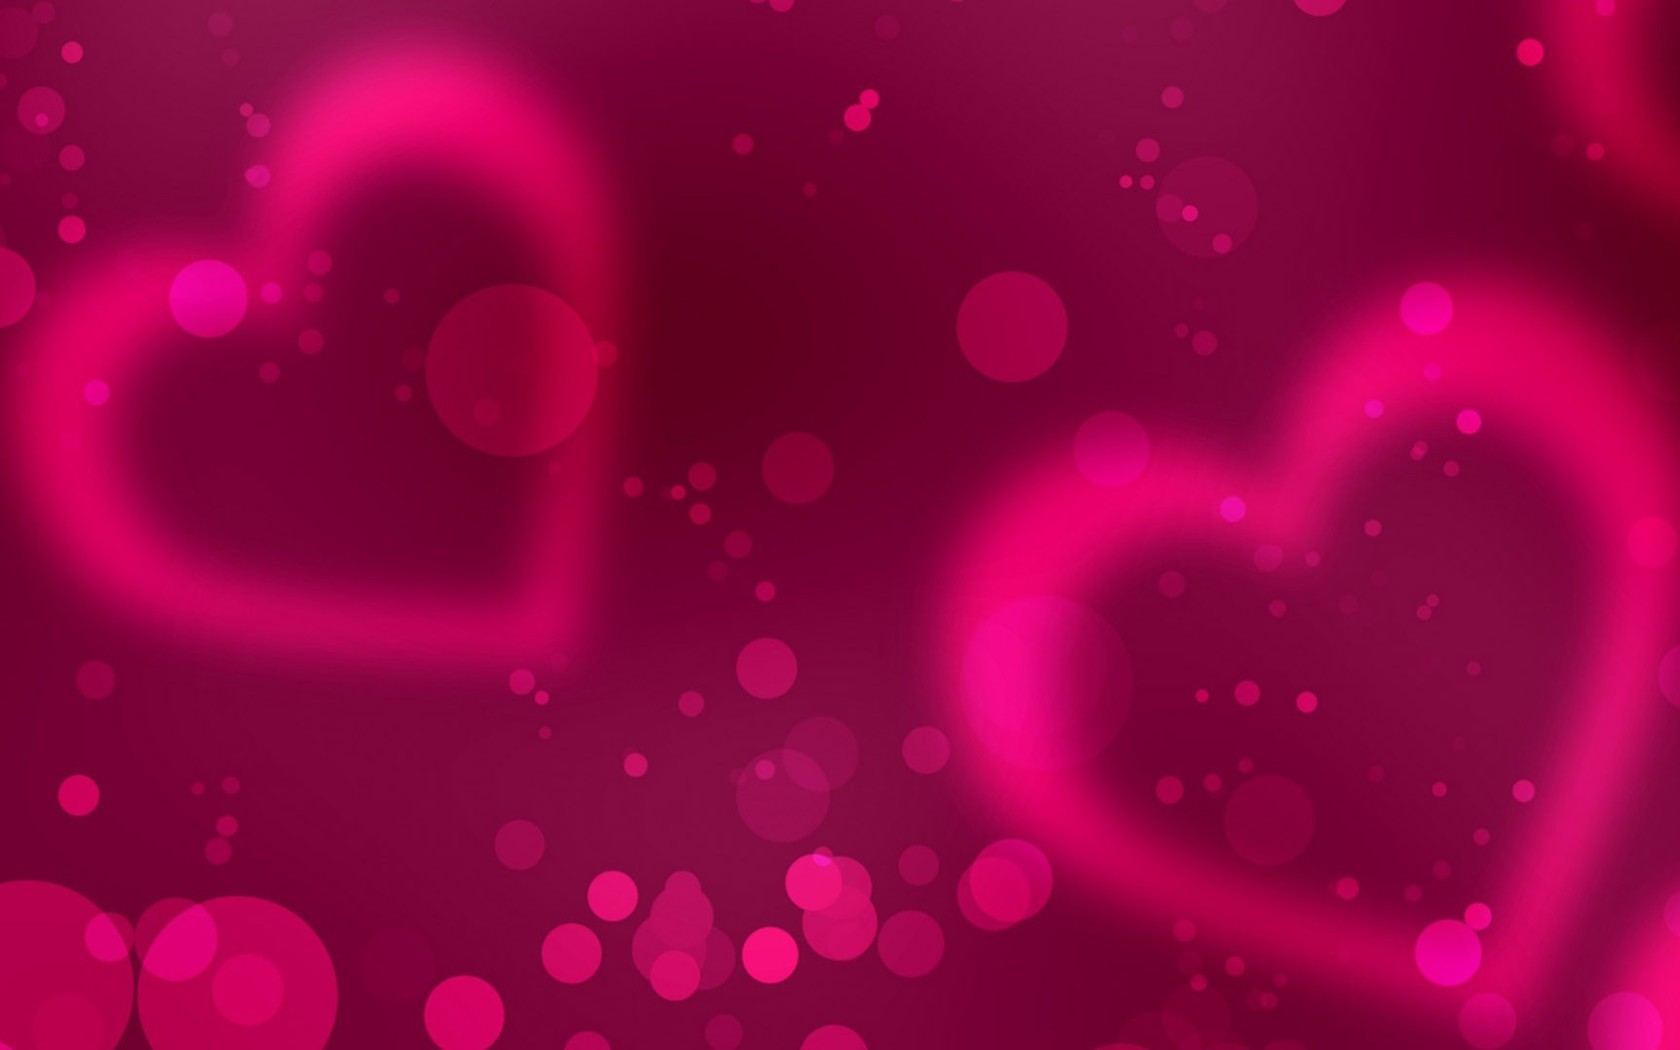 Pink Hearts Background - WallpaperSafari